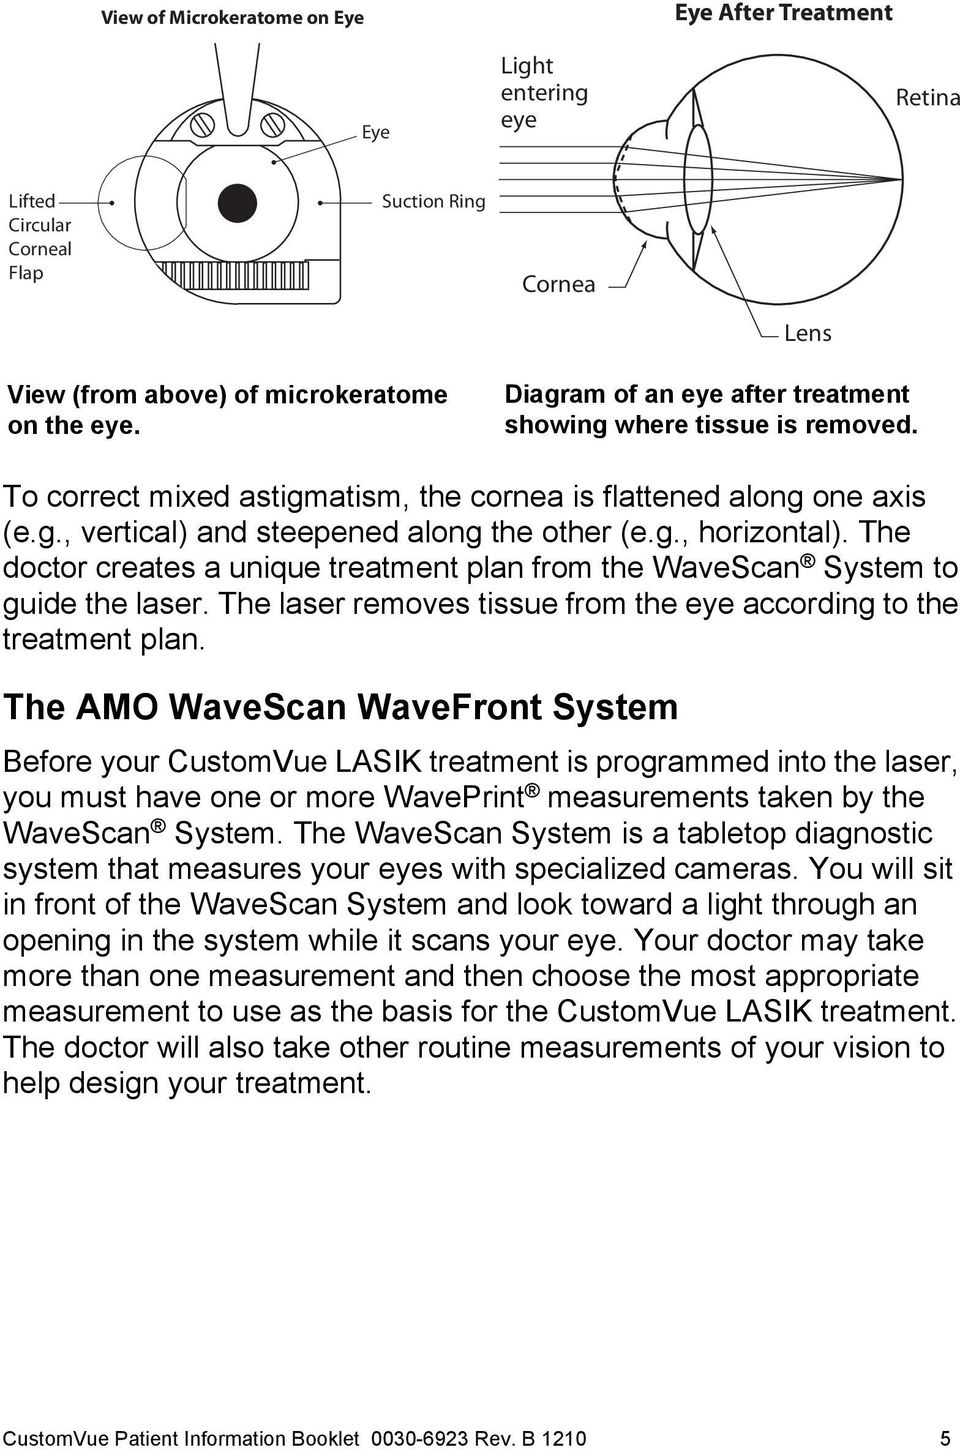 The doctor creates a unique treatment plan from the WaveScan System to guide the laser. The laser removes tissue from the eye according to the treatment plan.